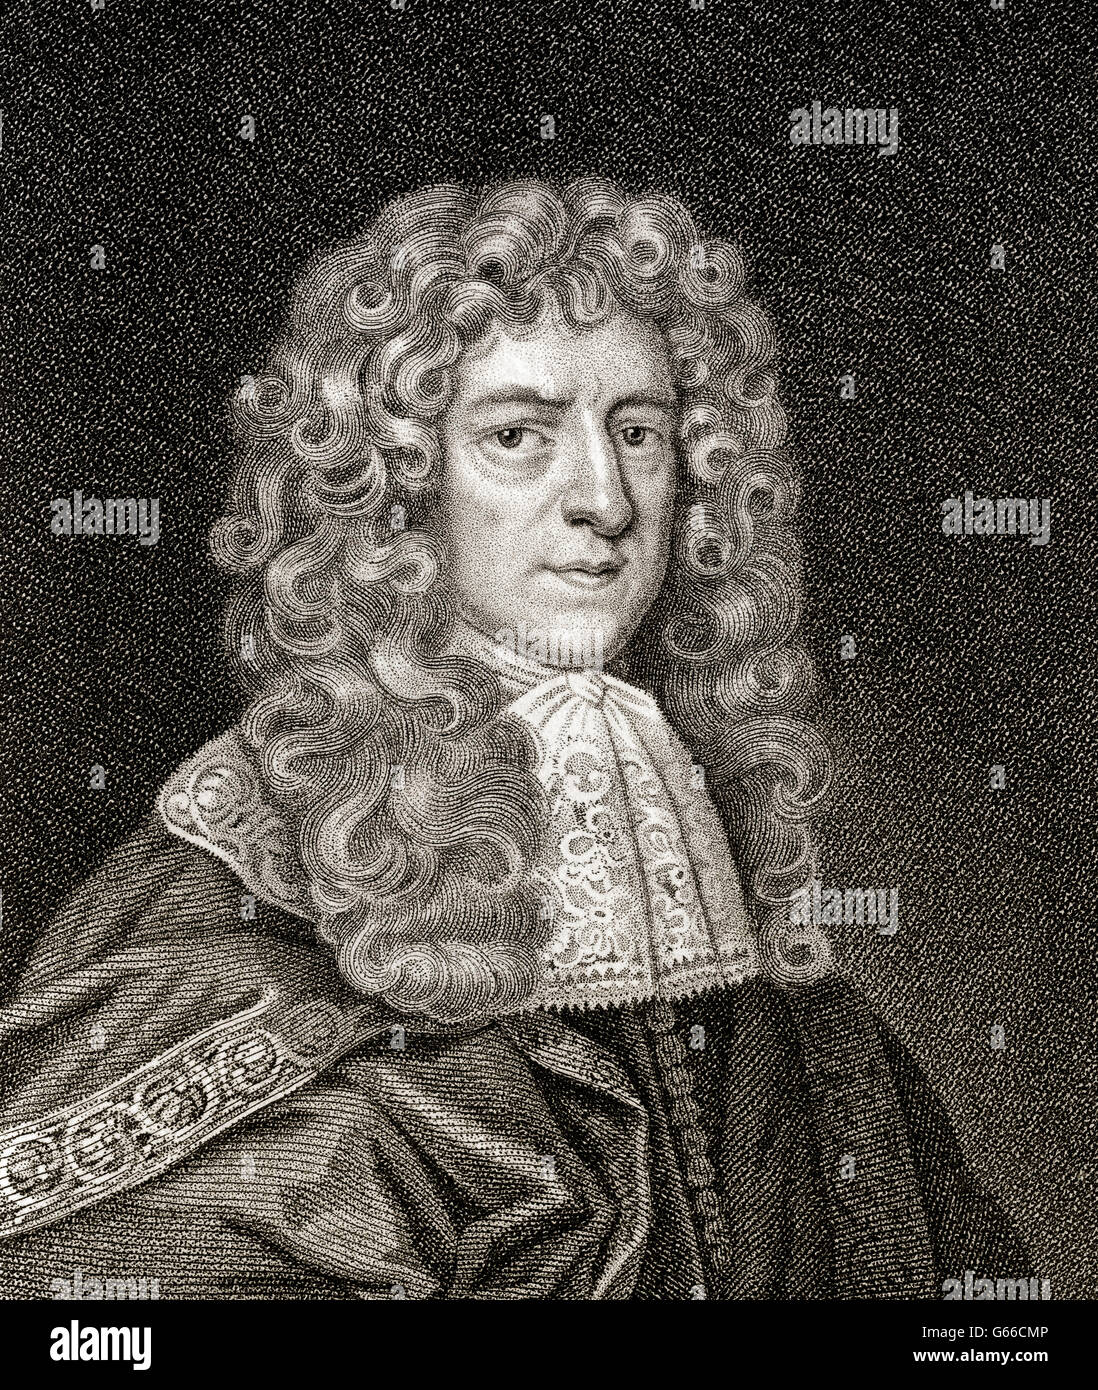 Anthony Ashley Cooper, 1st Earl of Shaftesbury, 1621-1683, an English politician - Stock Image